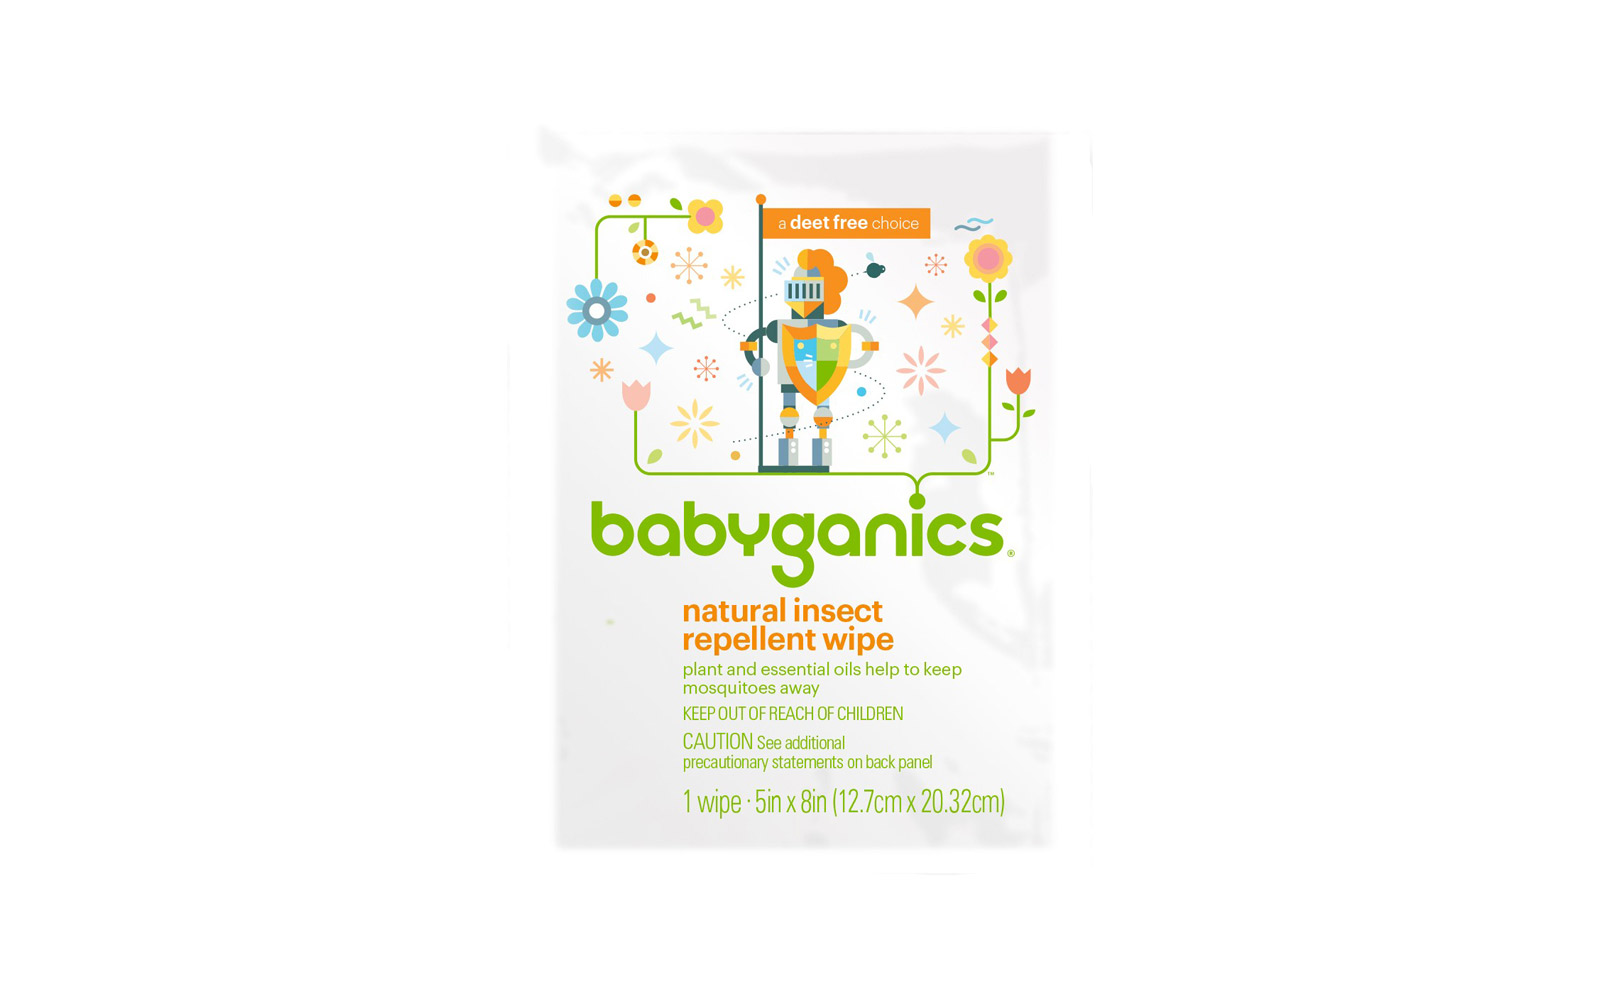 natural insect repellent wipes